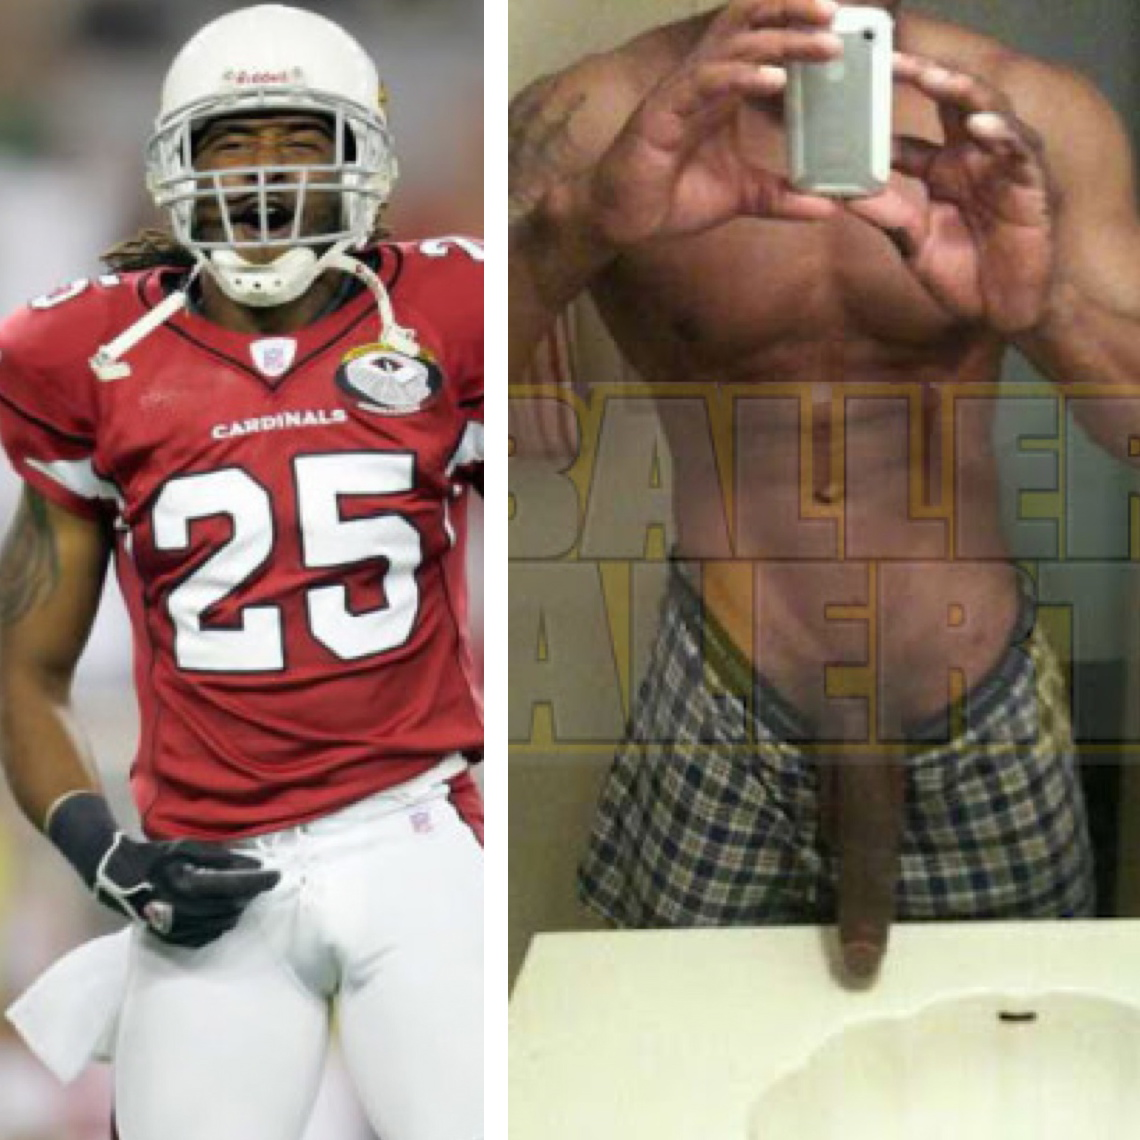 Black nfl player naked pics 524